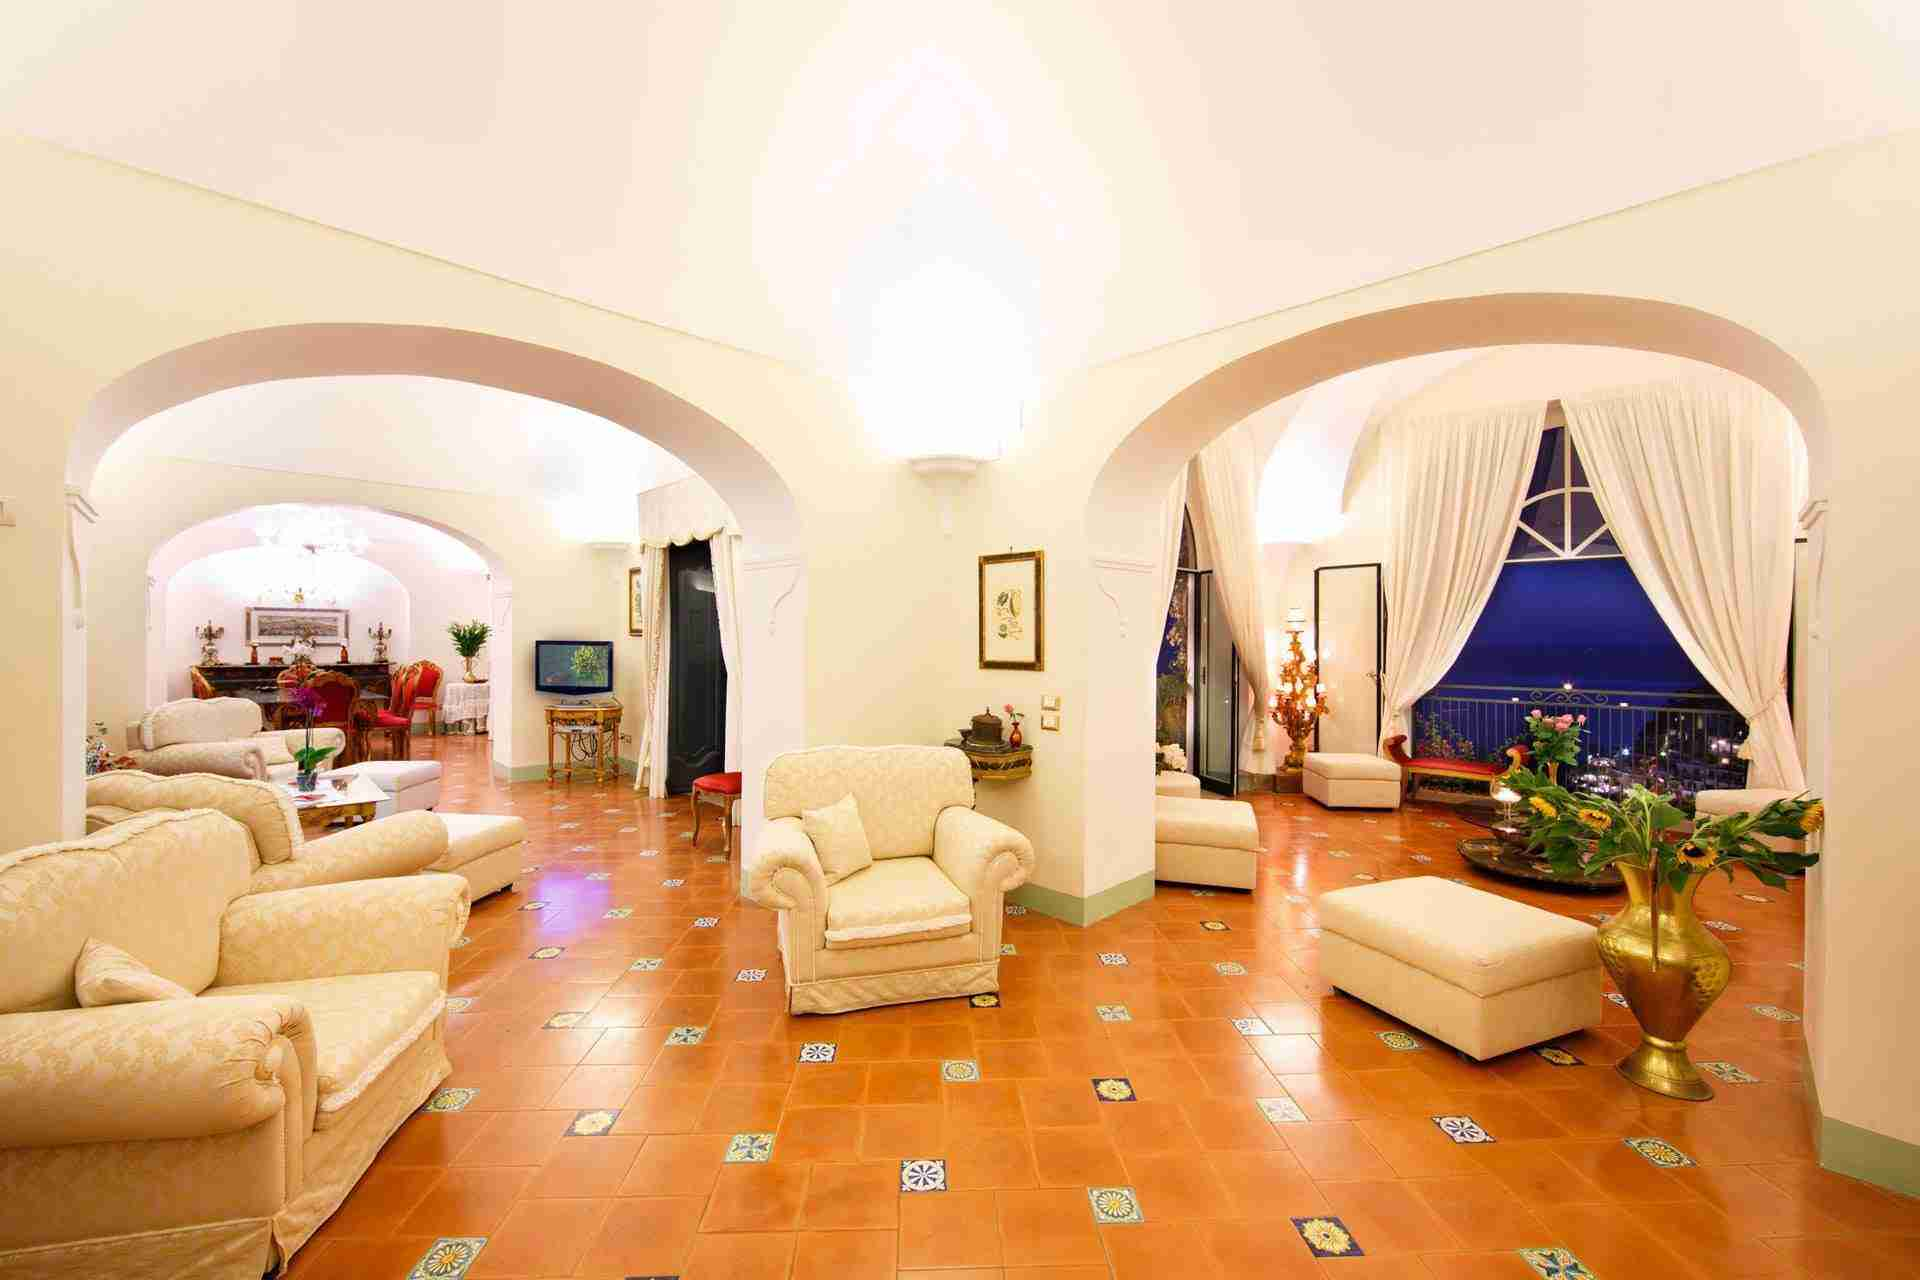 31 Positano living room